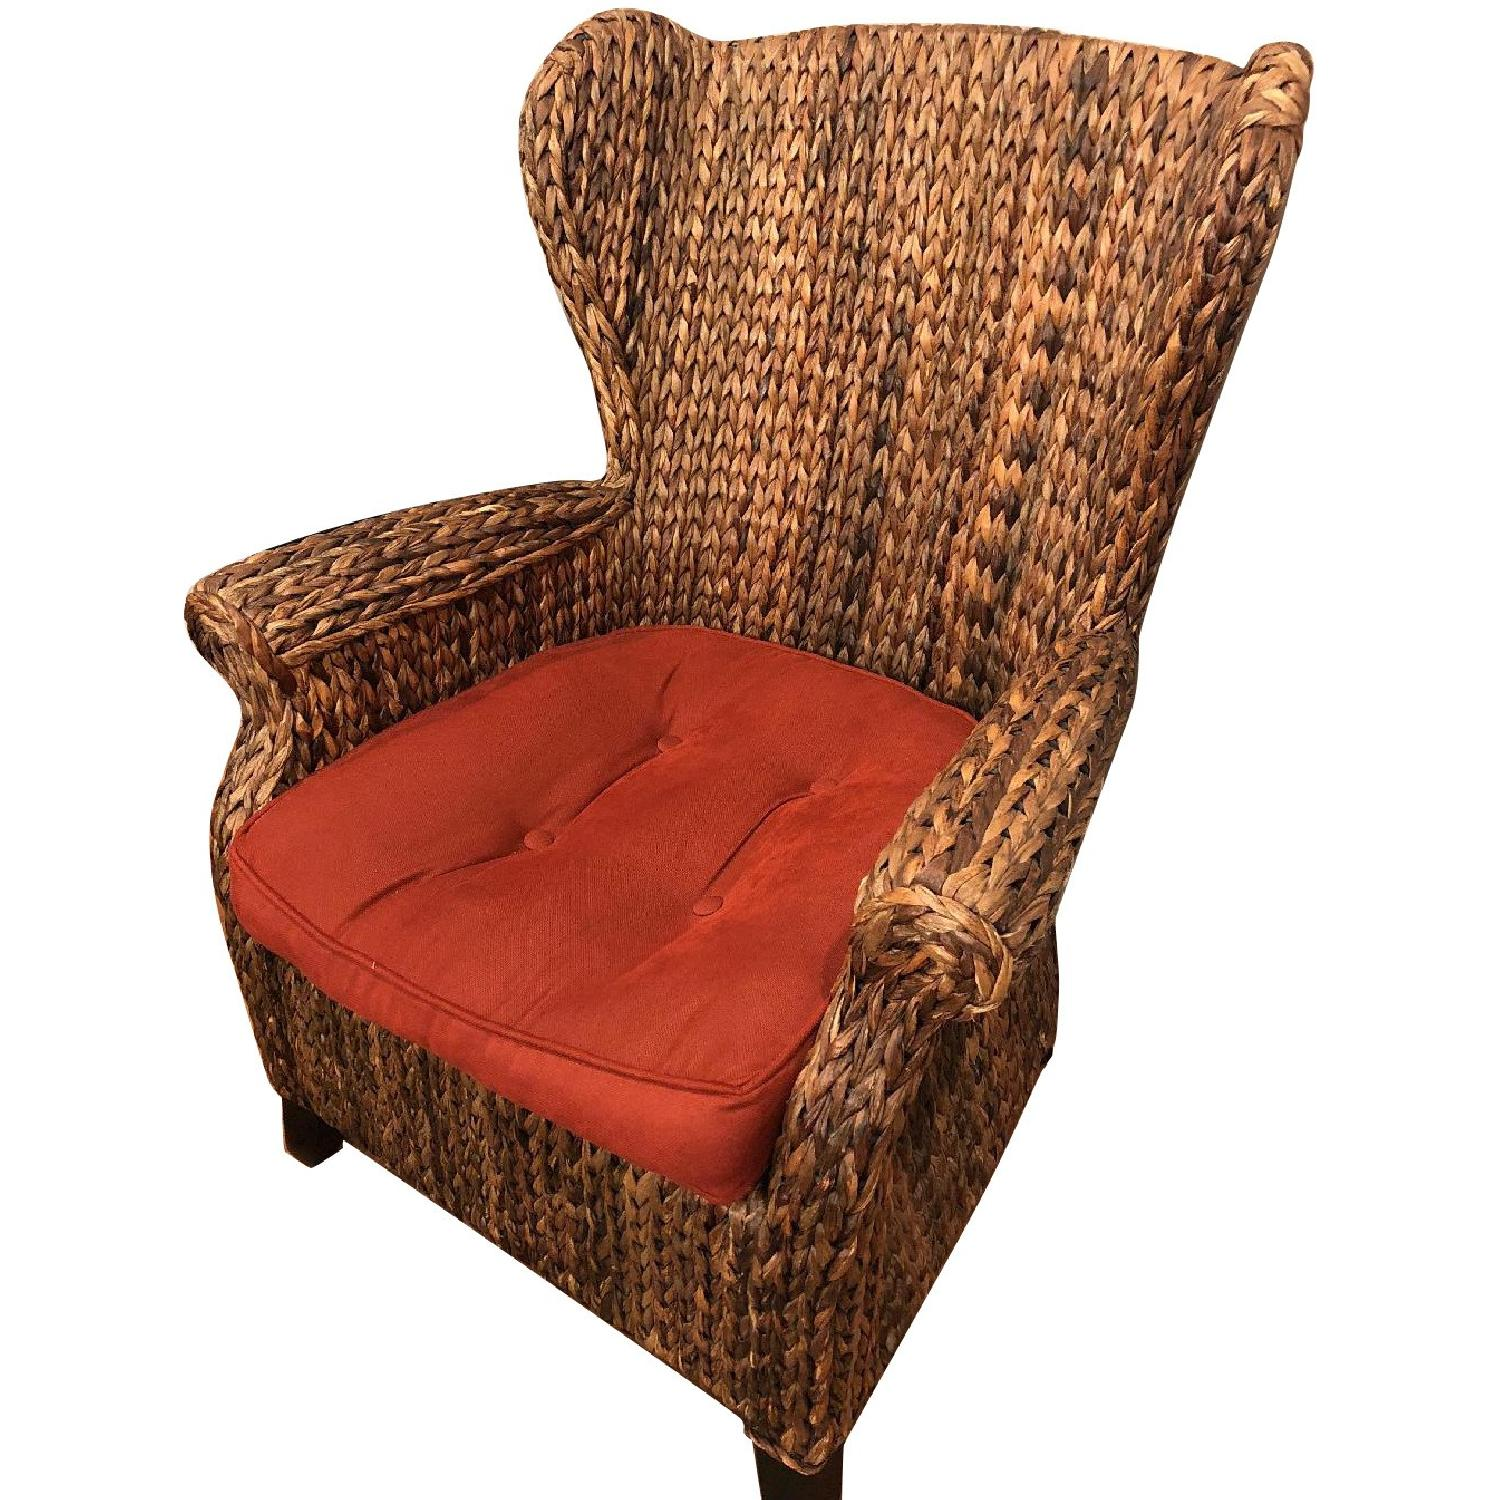 Pier 1 Wicker Wingback Chair in Mahogany